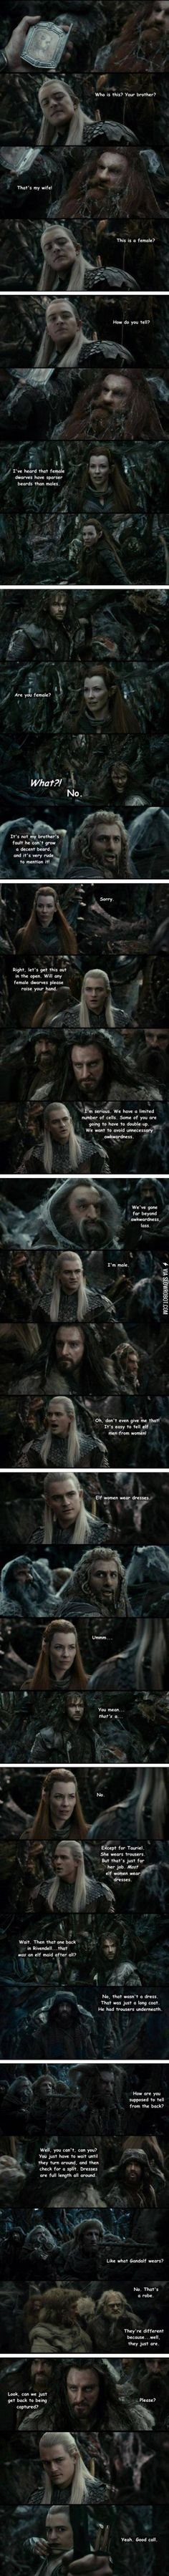 The Hobbit and gender. This is my favorite ever XD